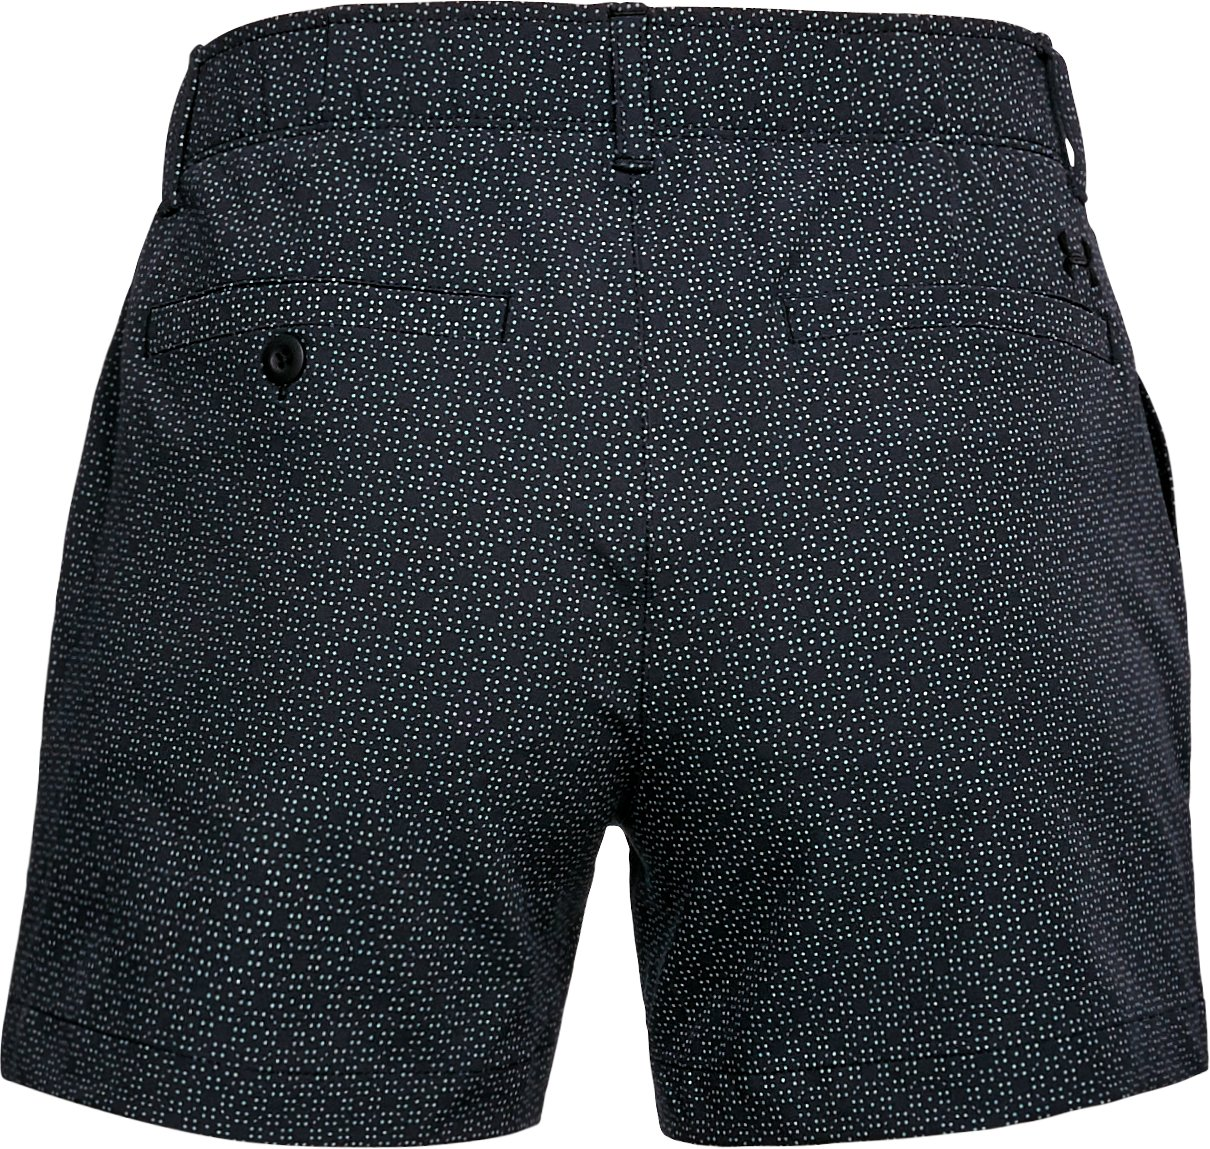 "Women's UA Links Printed 4"" Shorty, Black , undefined"